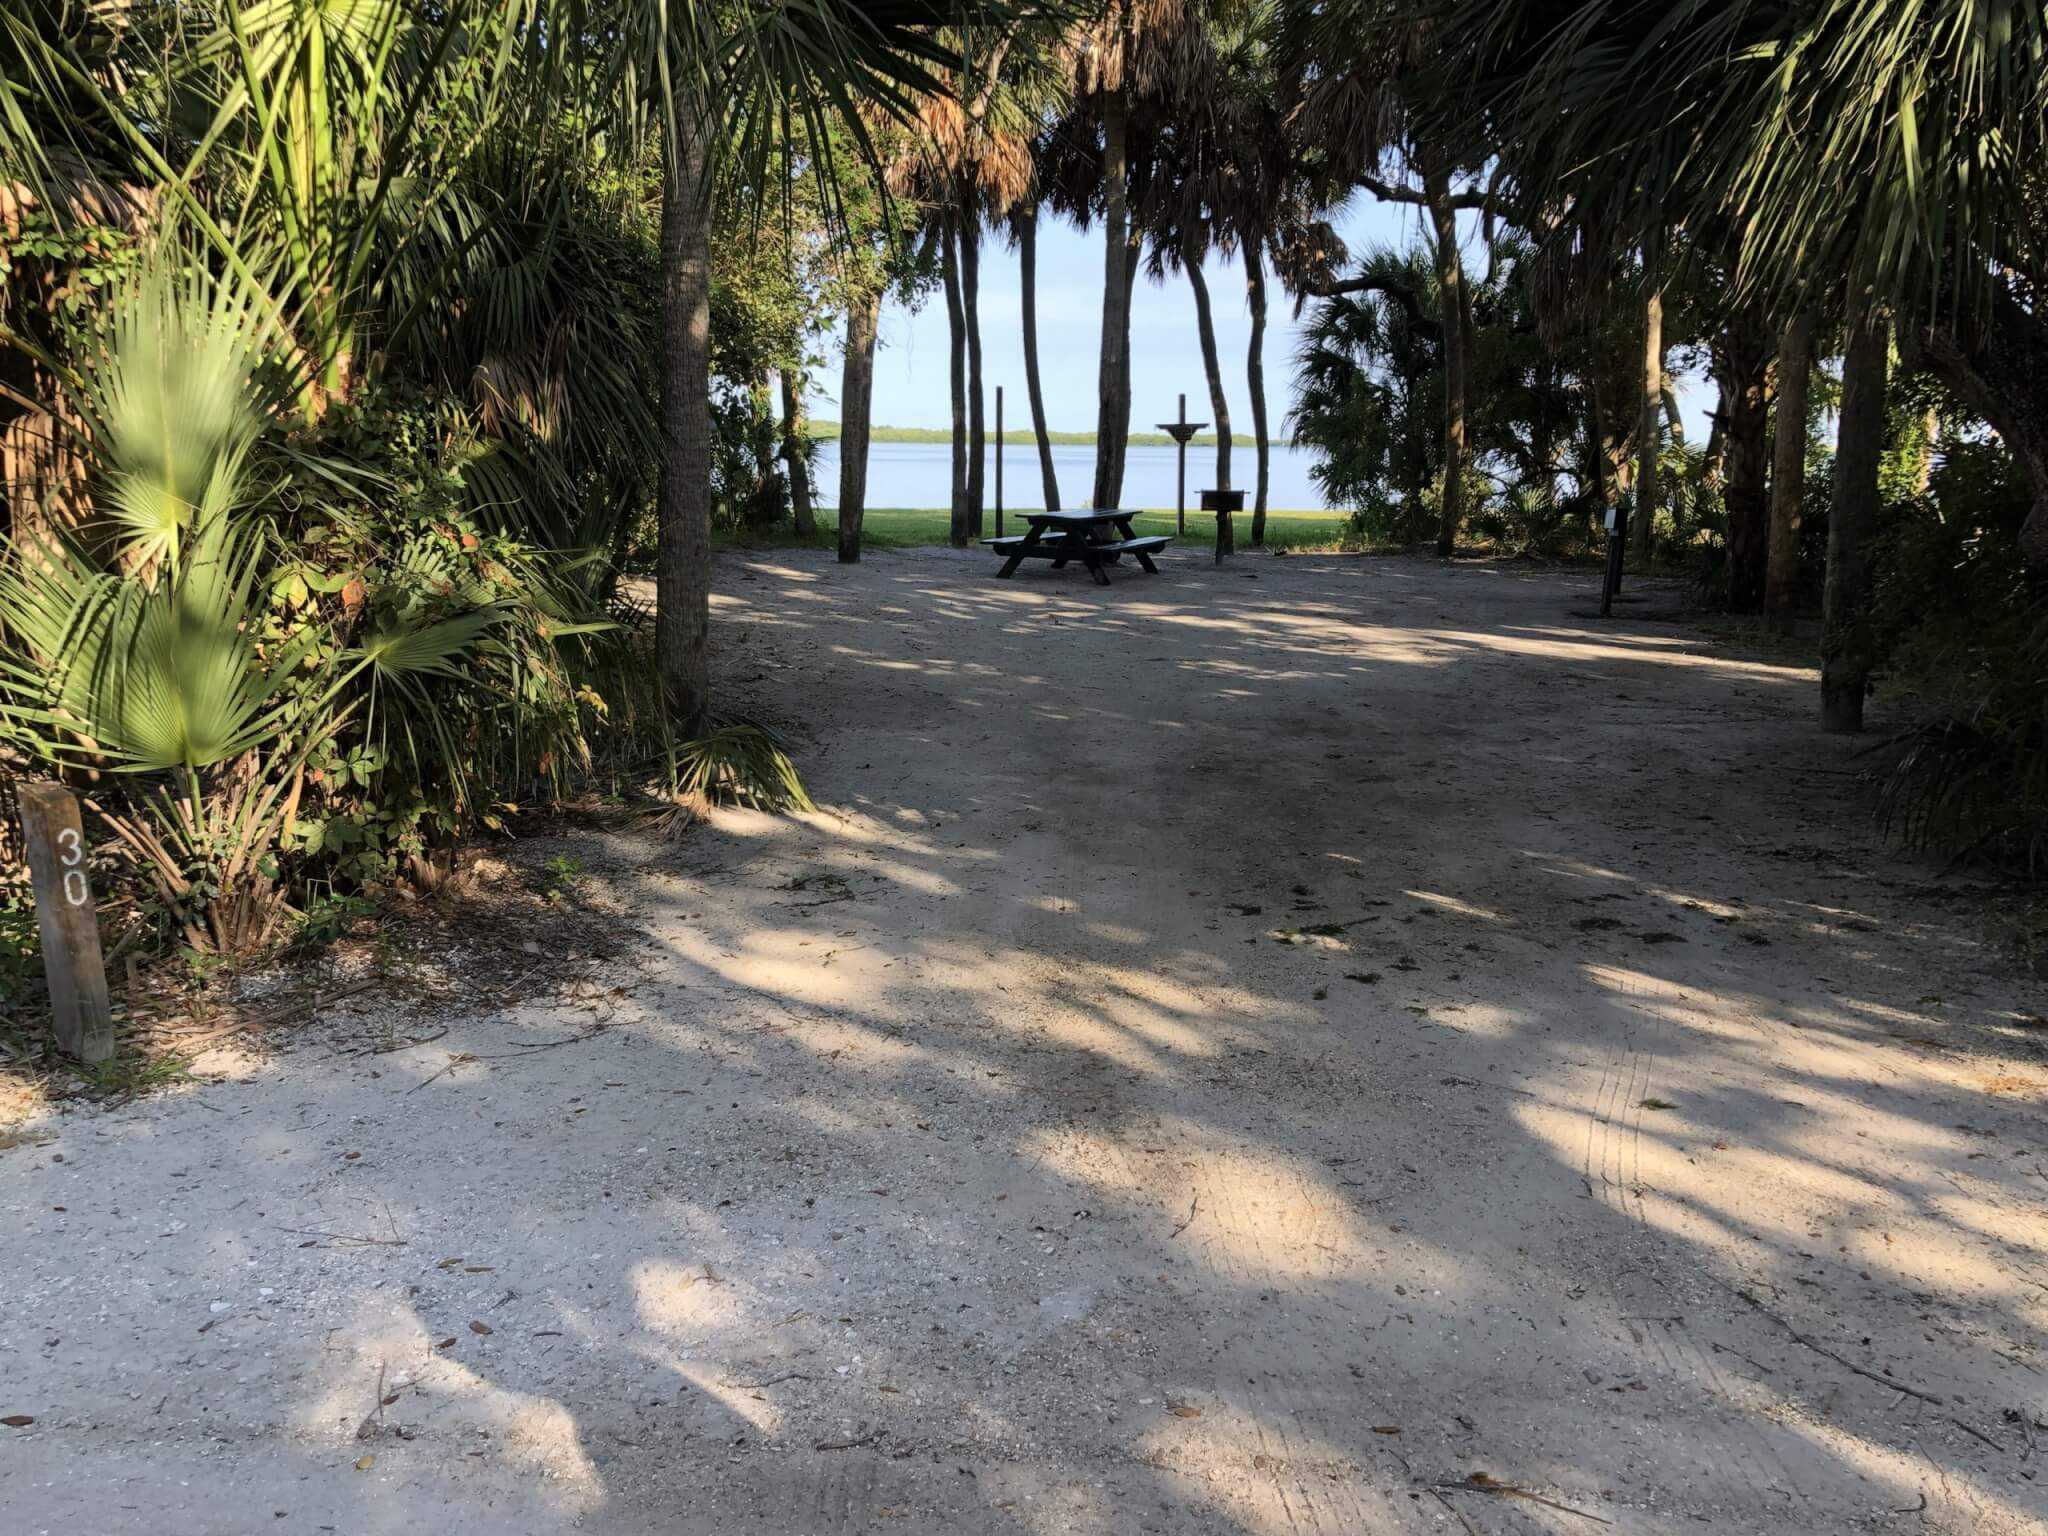 Camping Fever Camping Dreams - Fort De Soto Park Site 30